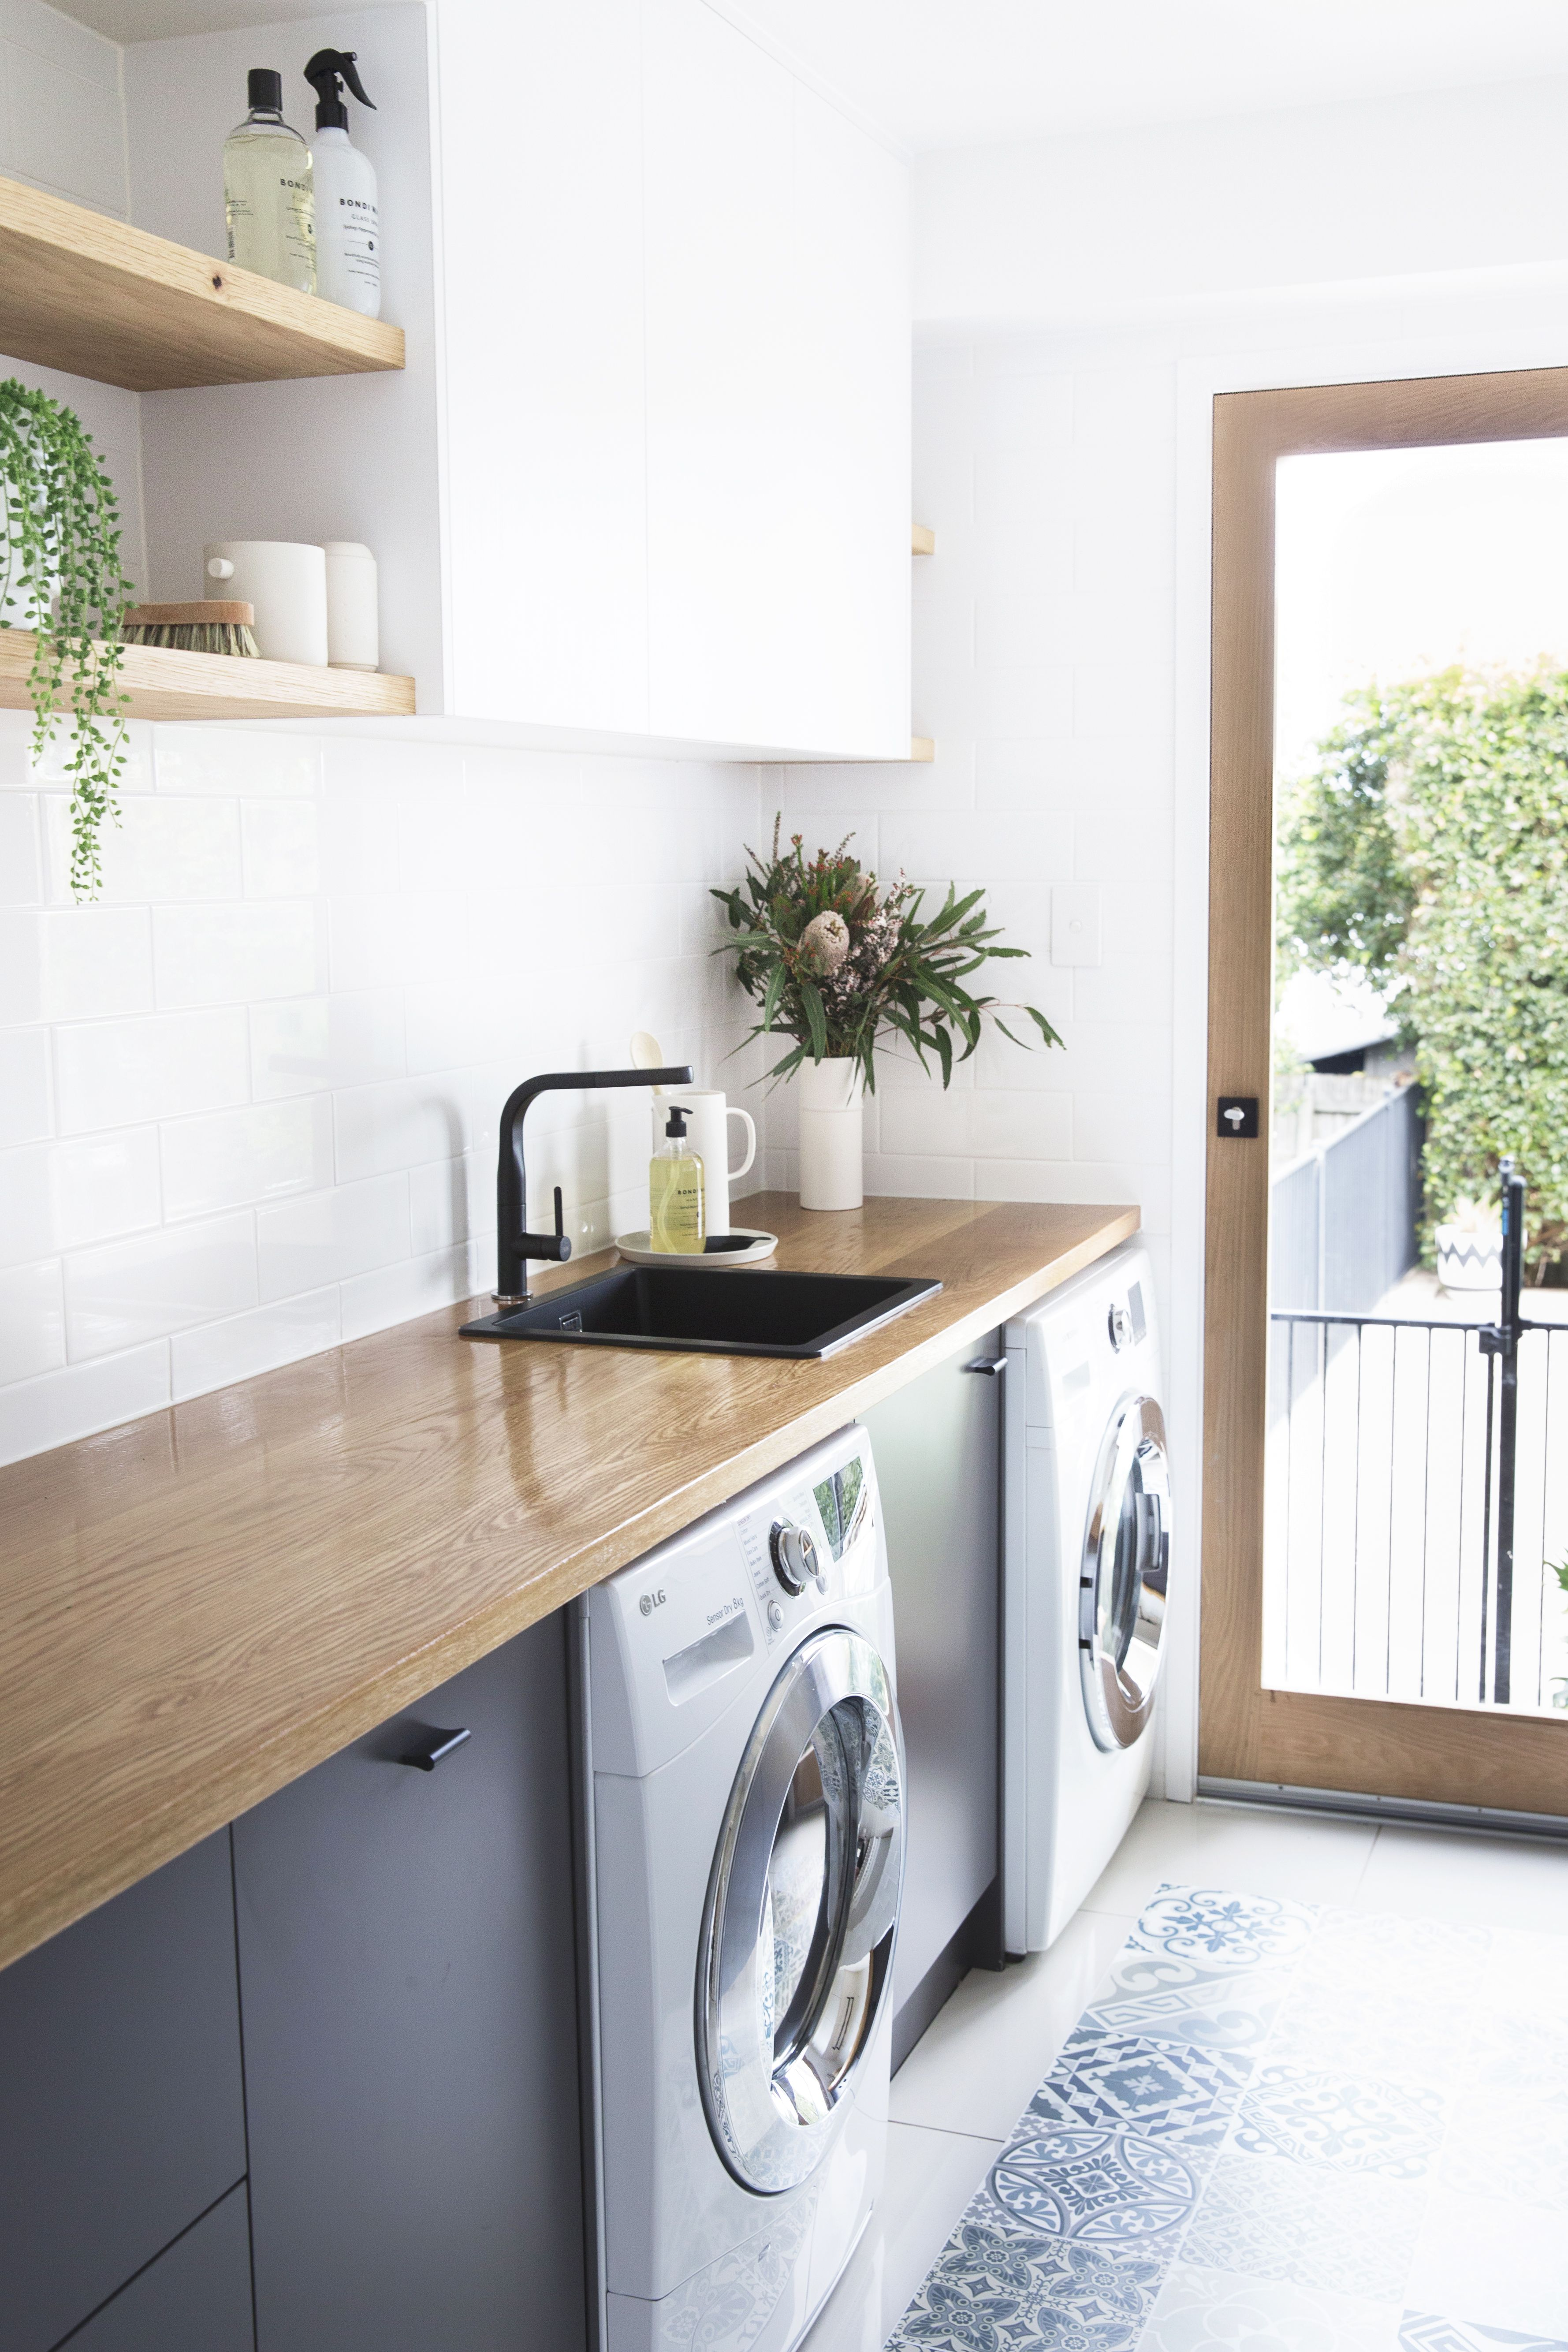 Kitchen Laundry Room Design: The Hardest Working Room In Your Home … Our Laundry Design